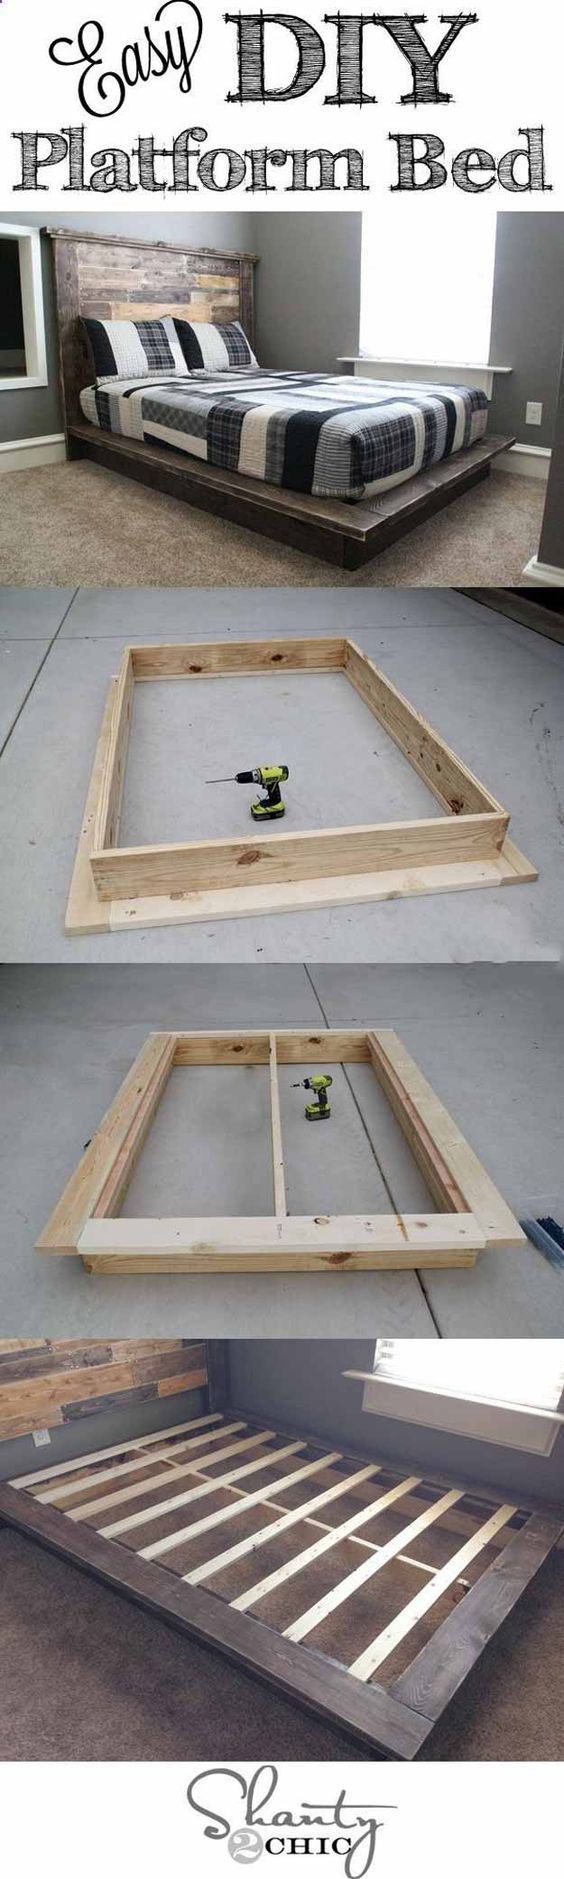 Easy DIY Platform Bed | Creative Pieces Of Wood For A New Bedroom With A Storage by DIY Ready at   http://diyready.com/14-diy-platform-beds/: